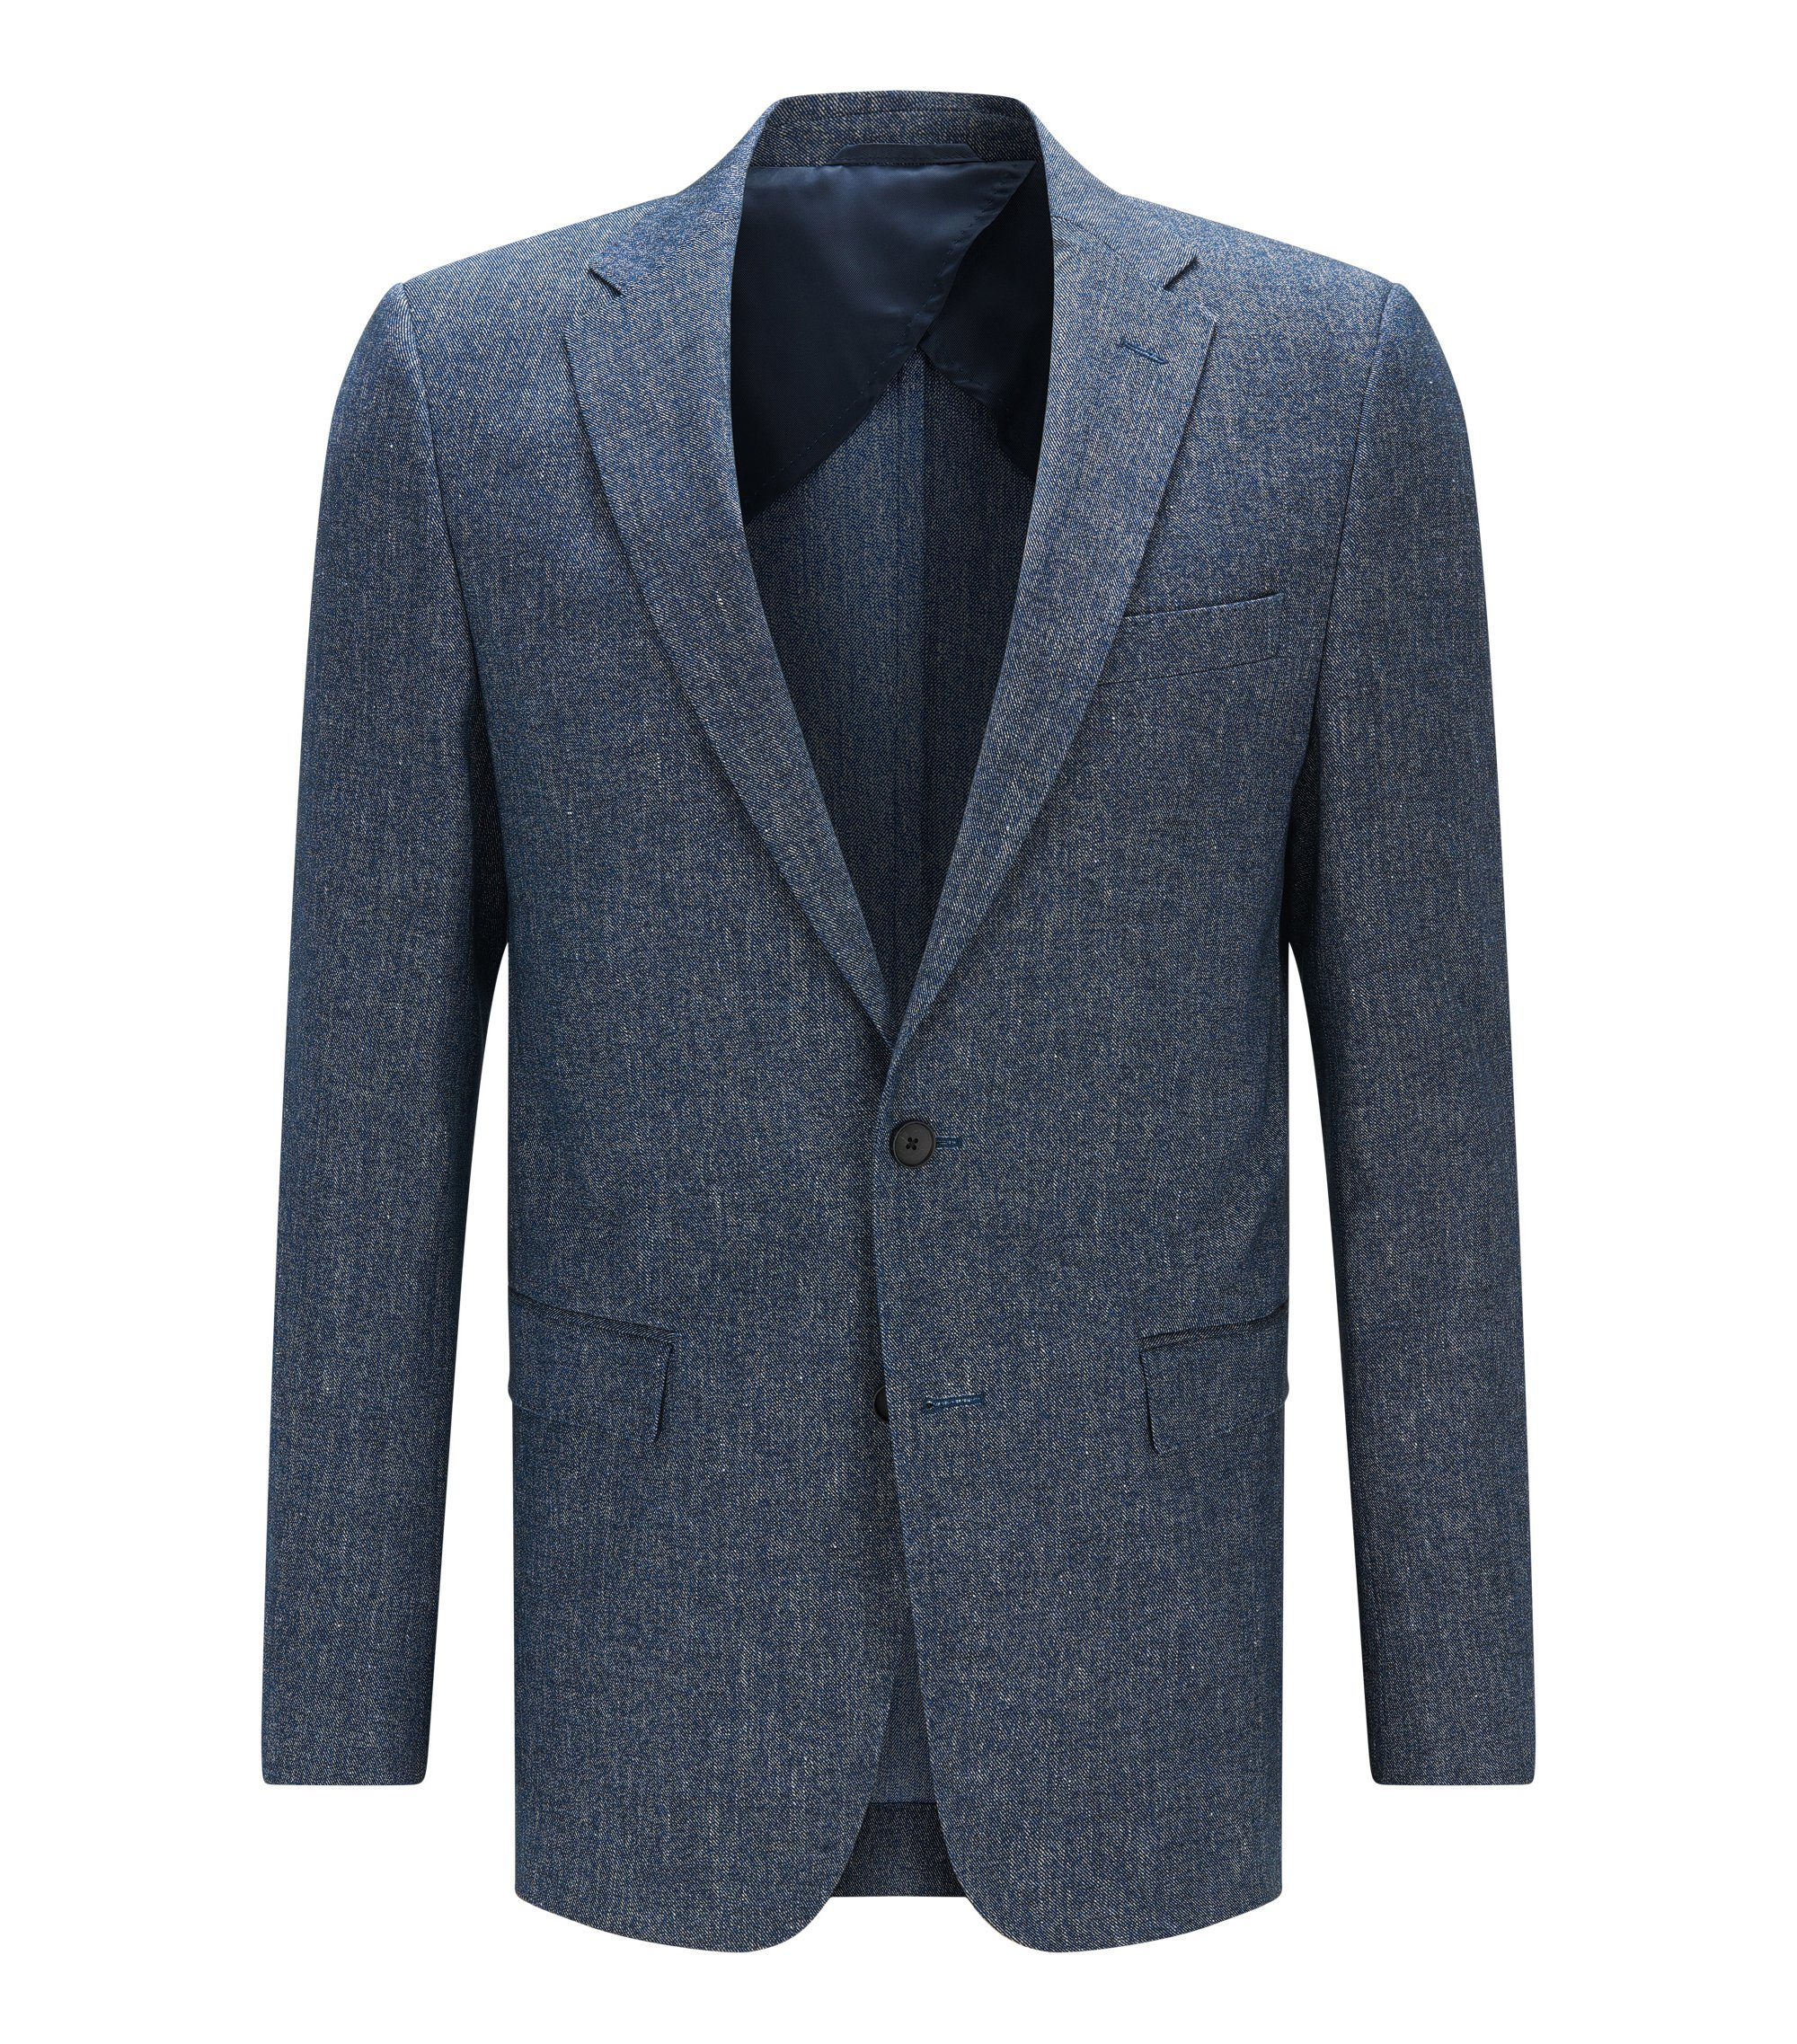 Stretch Cotton Linen Sport Coat, Slim Fit | Nobis, Blue